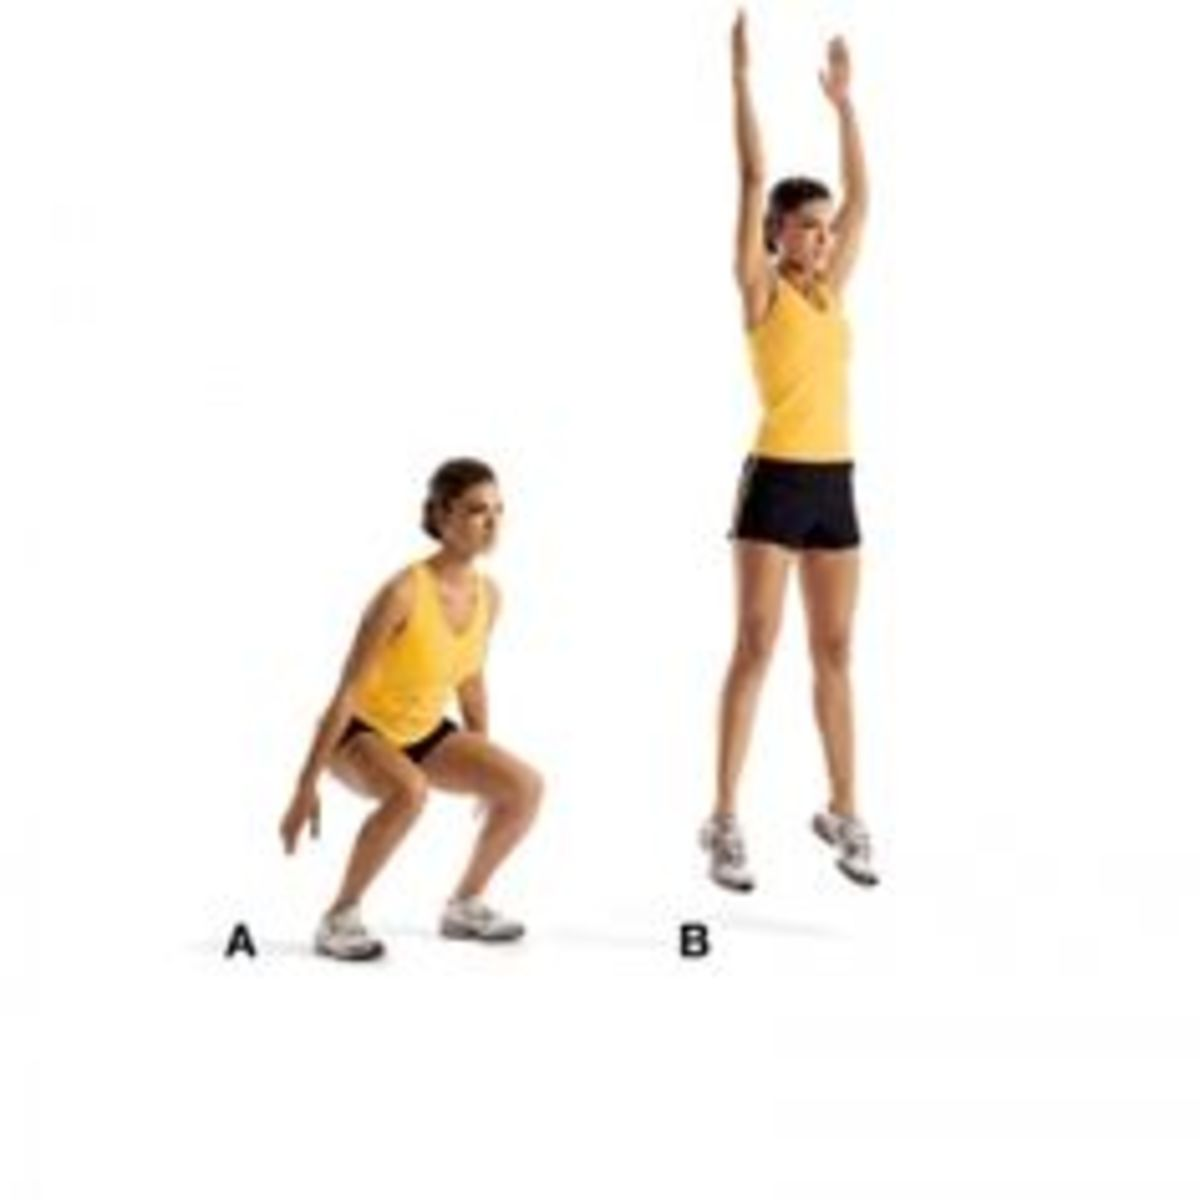 Squat Jumps: An explosive, power movement targeting the glutes and quadriceps.